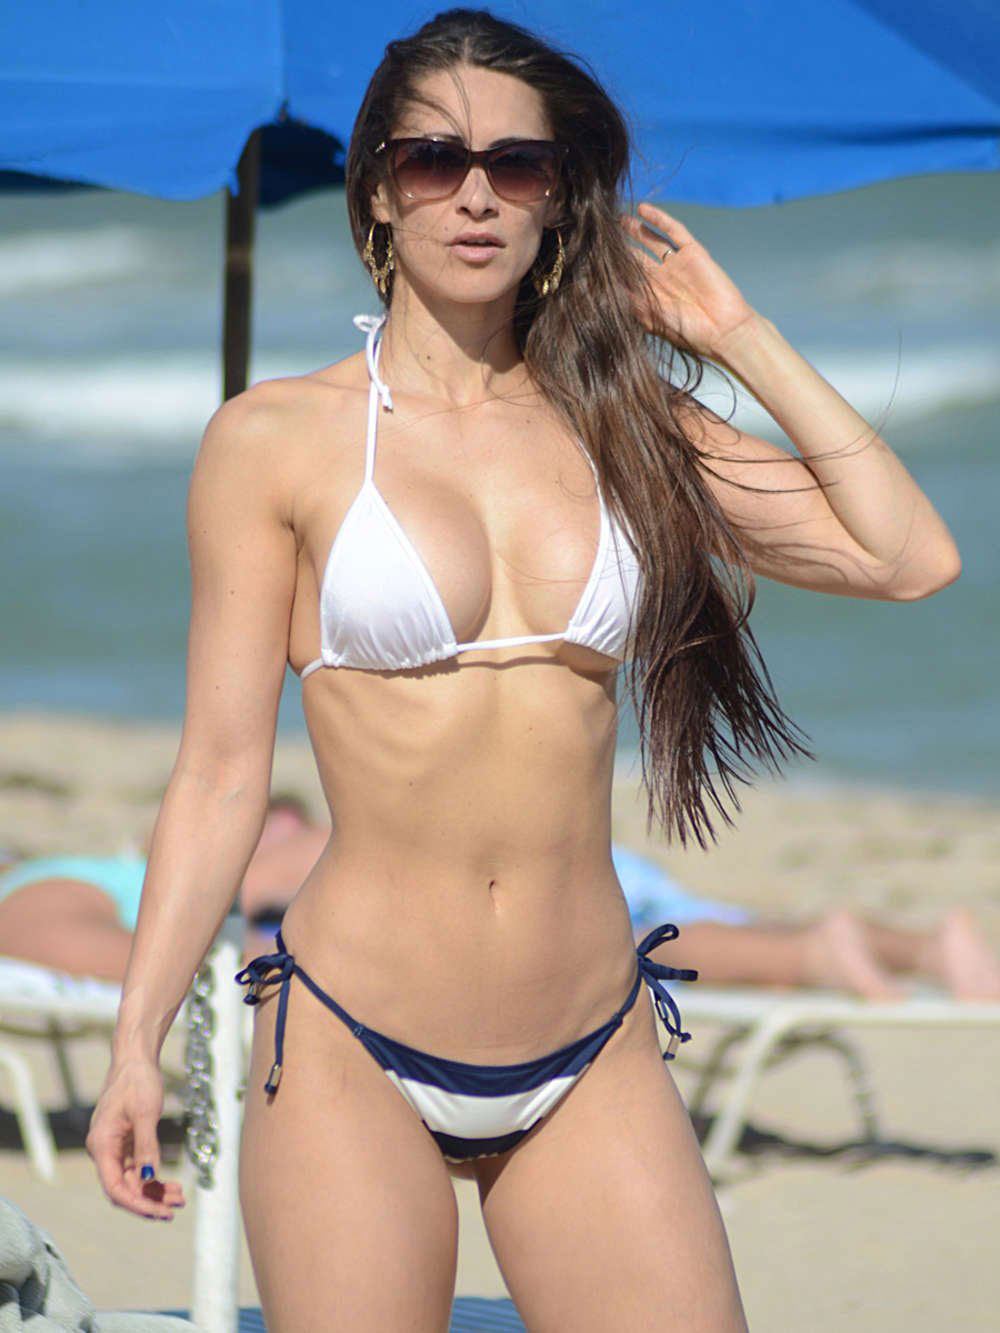 anais zanotti in bikini at a beach in miami   hawtcelebs   hawtcelebs